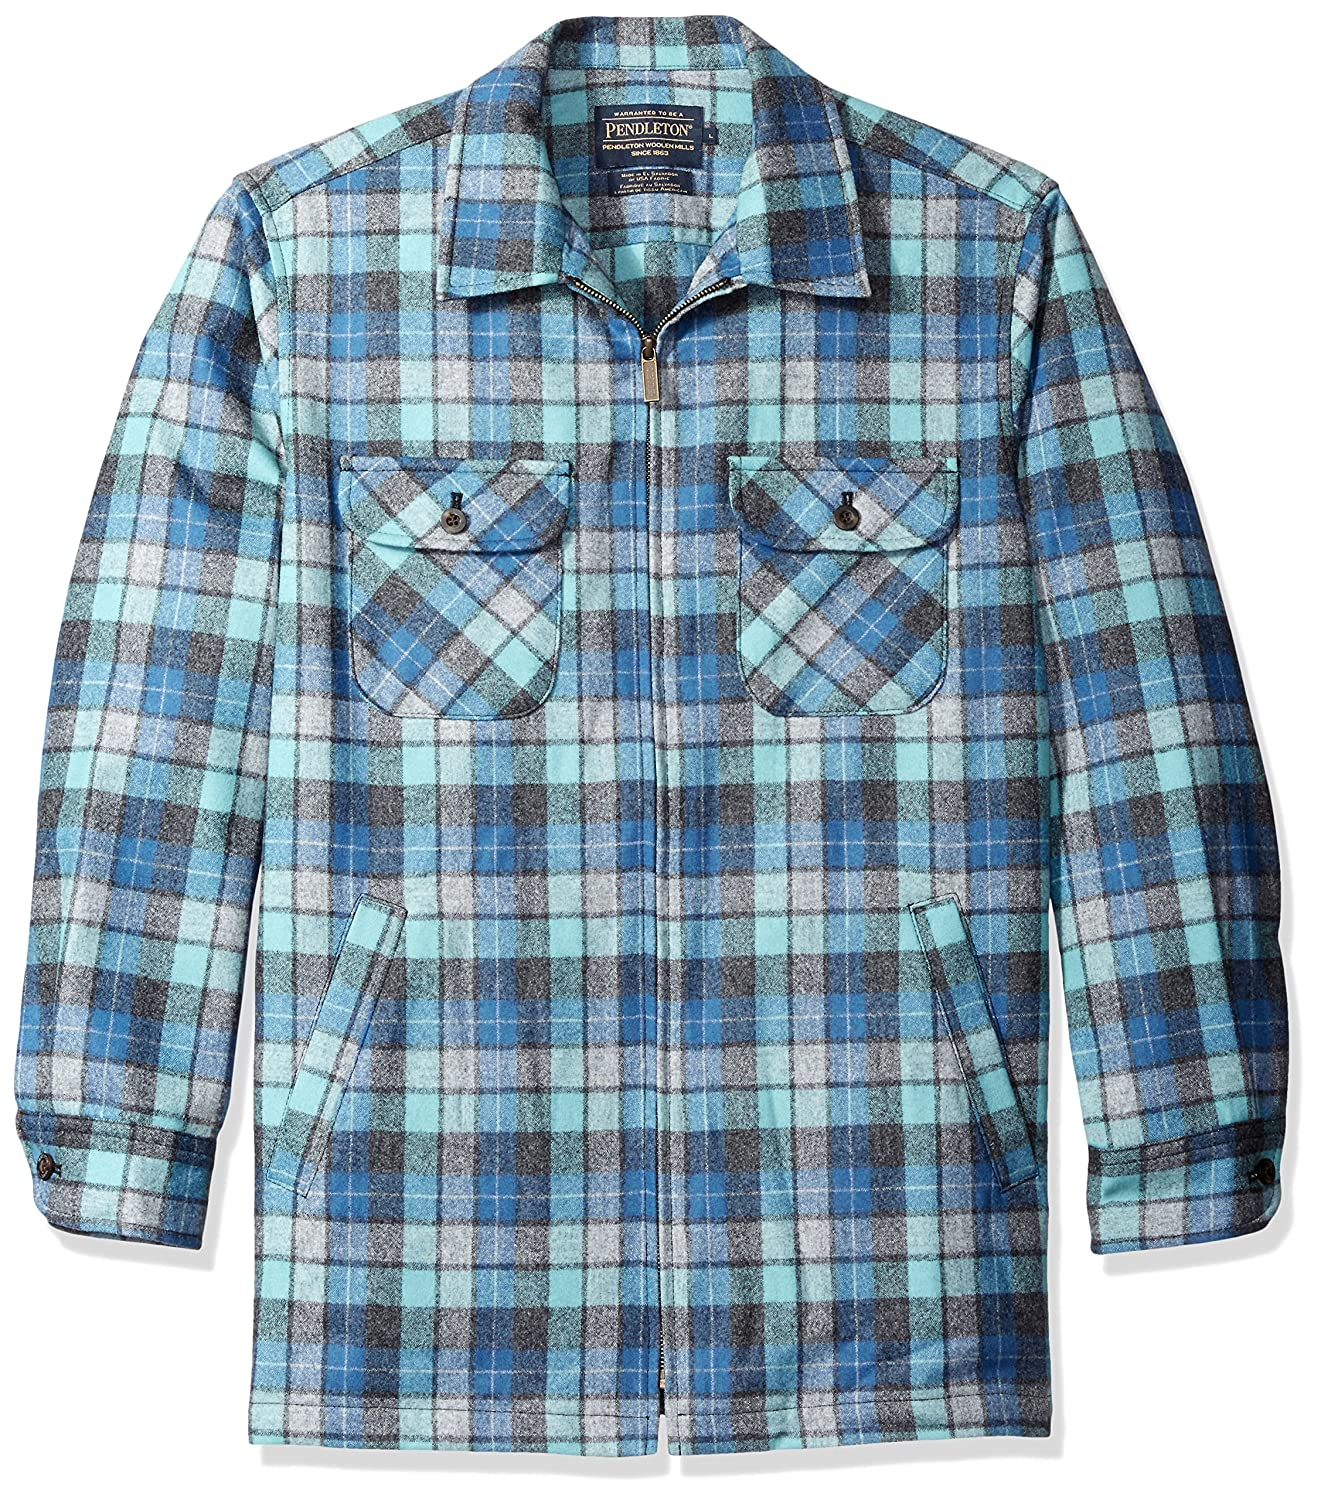 Pendleton SHIRT メンズ B01M7OWL8R L|Blue/Green Original Surf Plaid Blue/Green Original Surf Plaid L